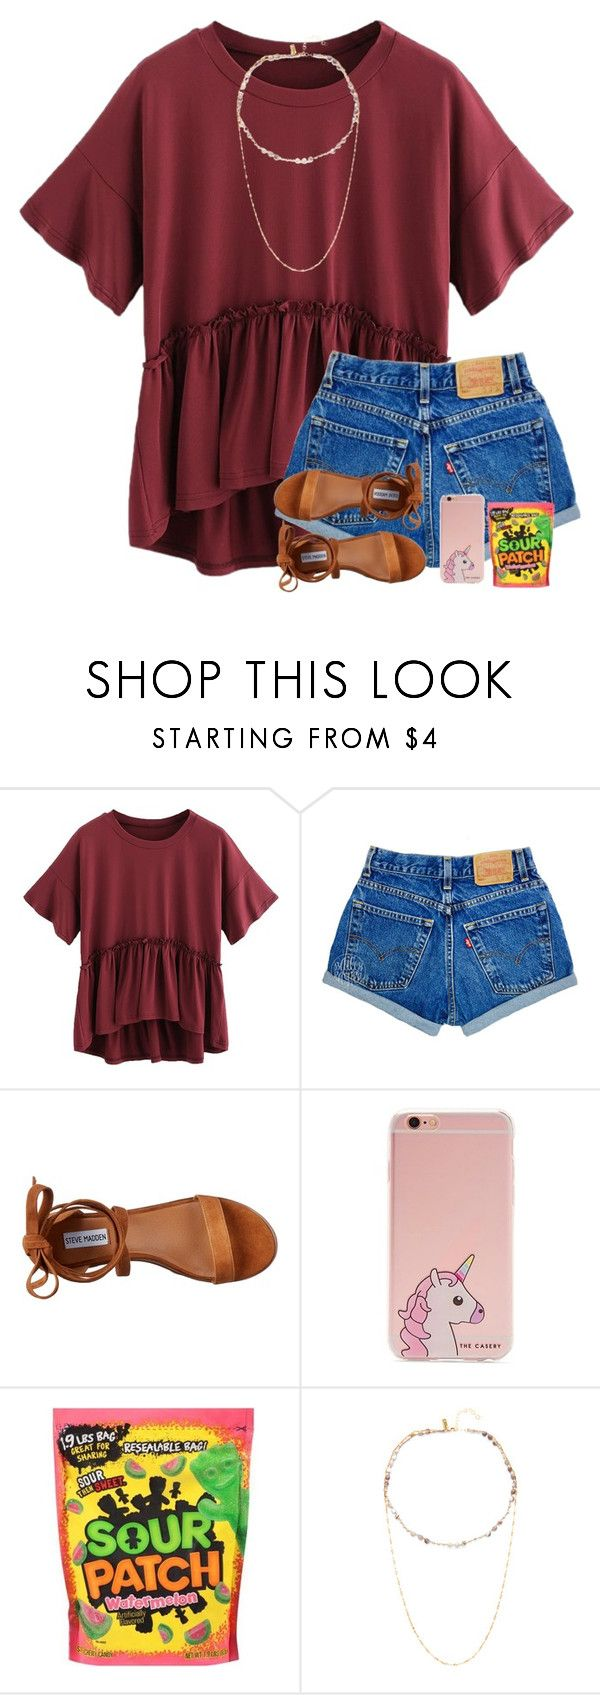 """""""It's a chicken noodle soup kinda night 🍜"""" by kaitlynbug1226 ❤ liked on Polyvore featuring Steve Madden, Forever 21 and Native Gem"""